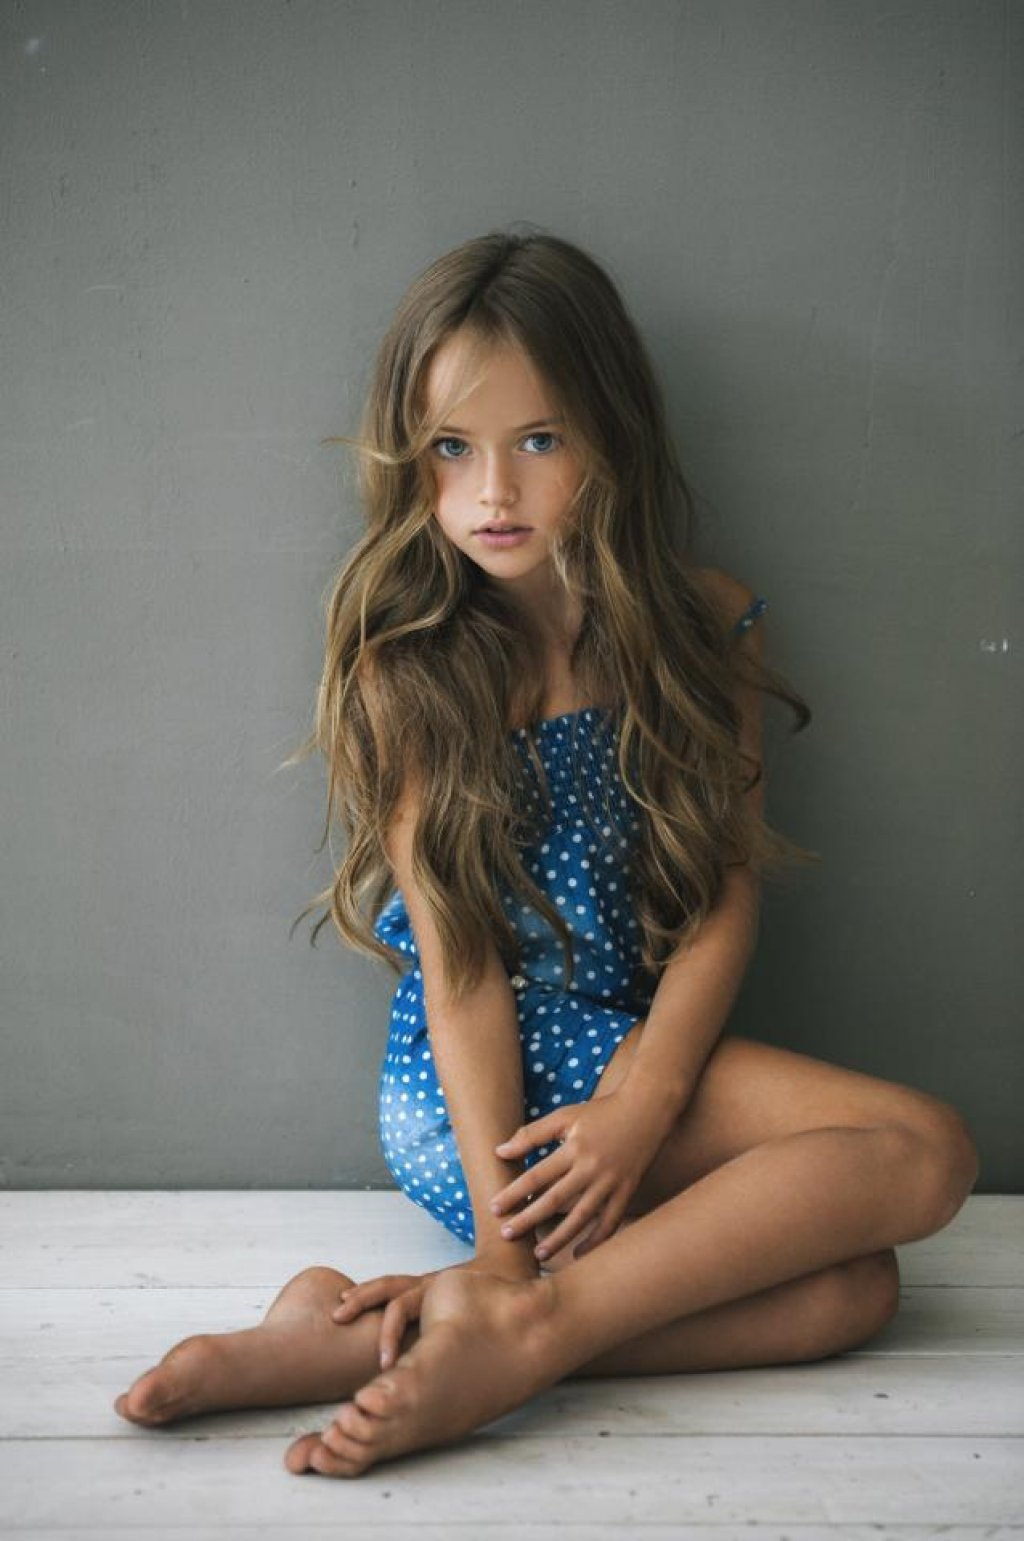 the-most-beautiful-girlin-the-world-is-only-10-years-old_07